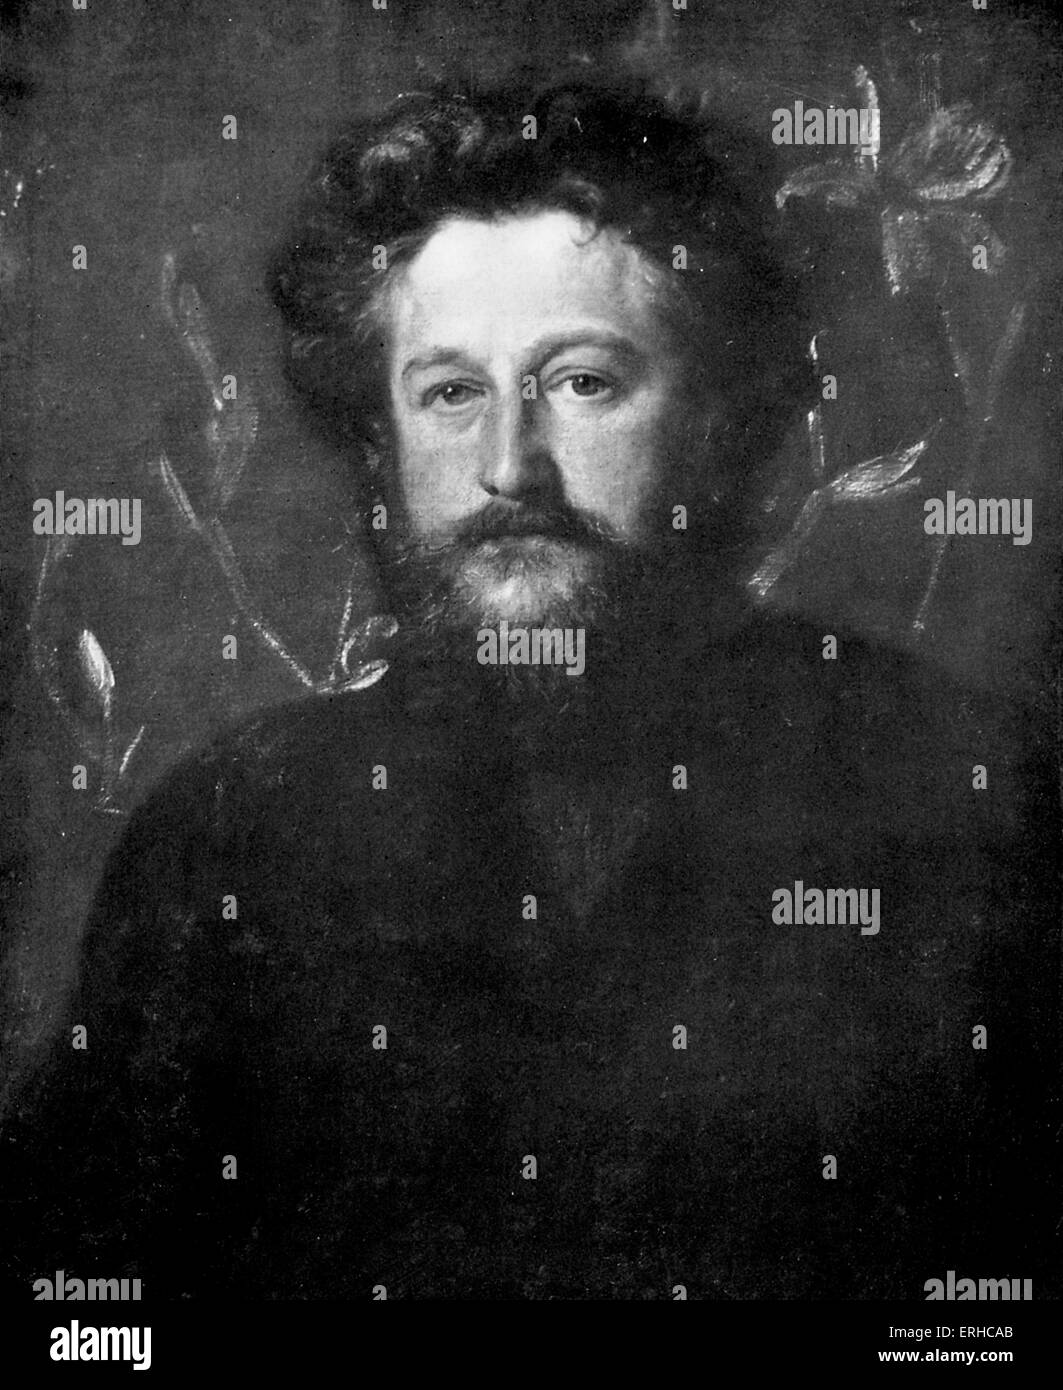 William Morris, portrait. English textile designer, artist and writer. Founder of the English Arts and Crafts Movement. Stock Photo